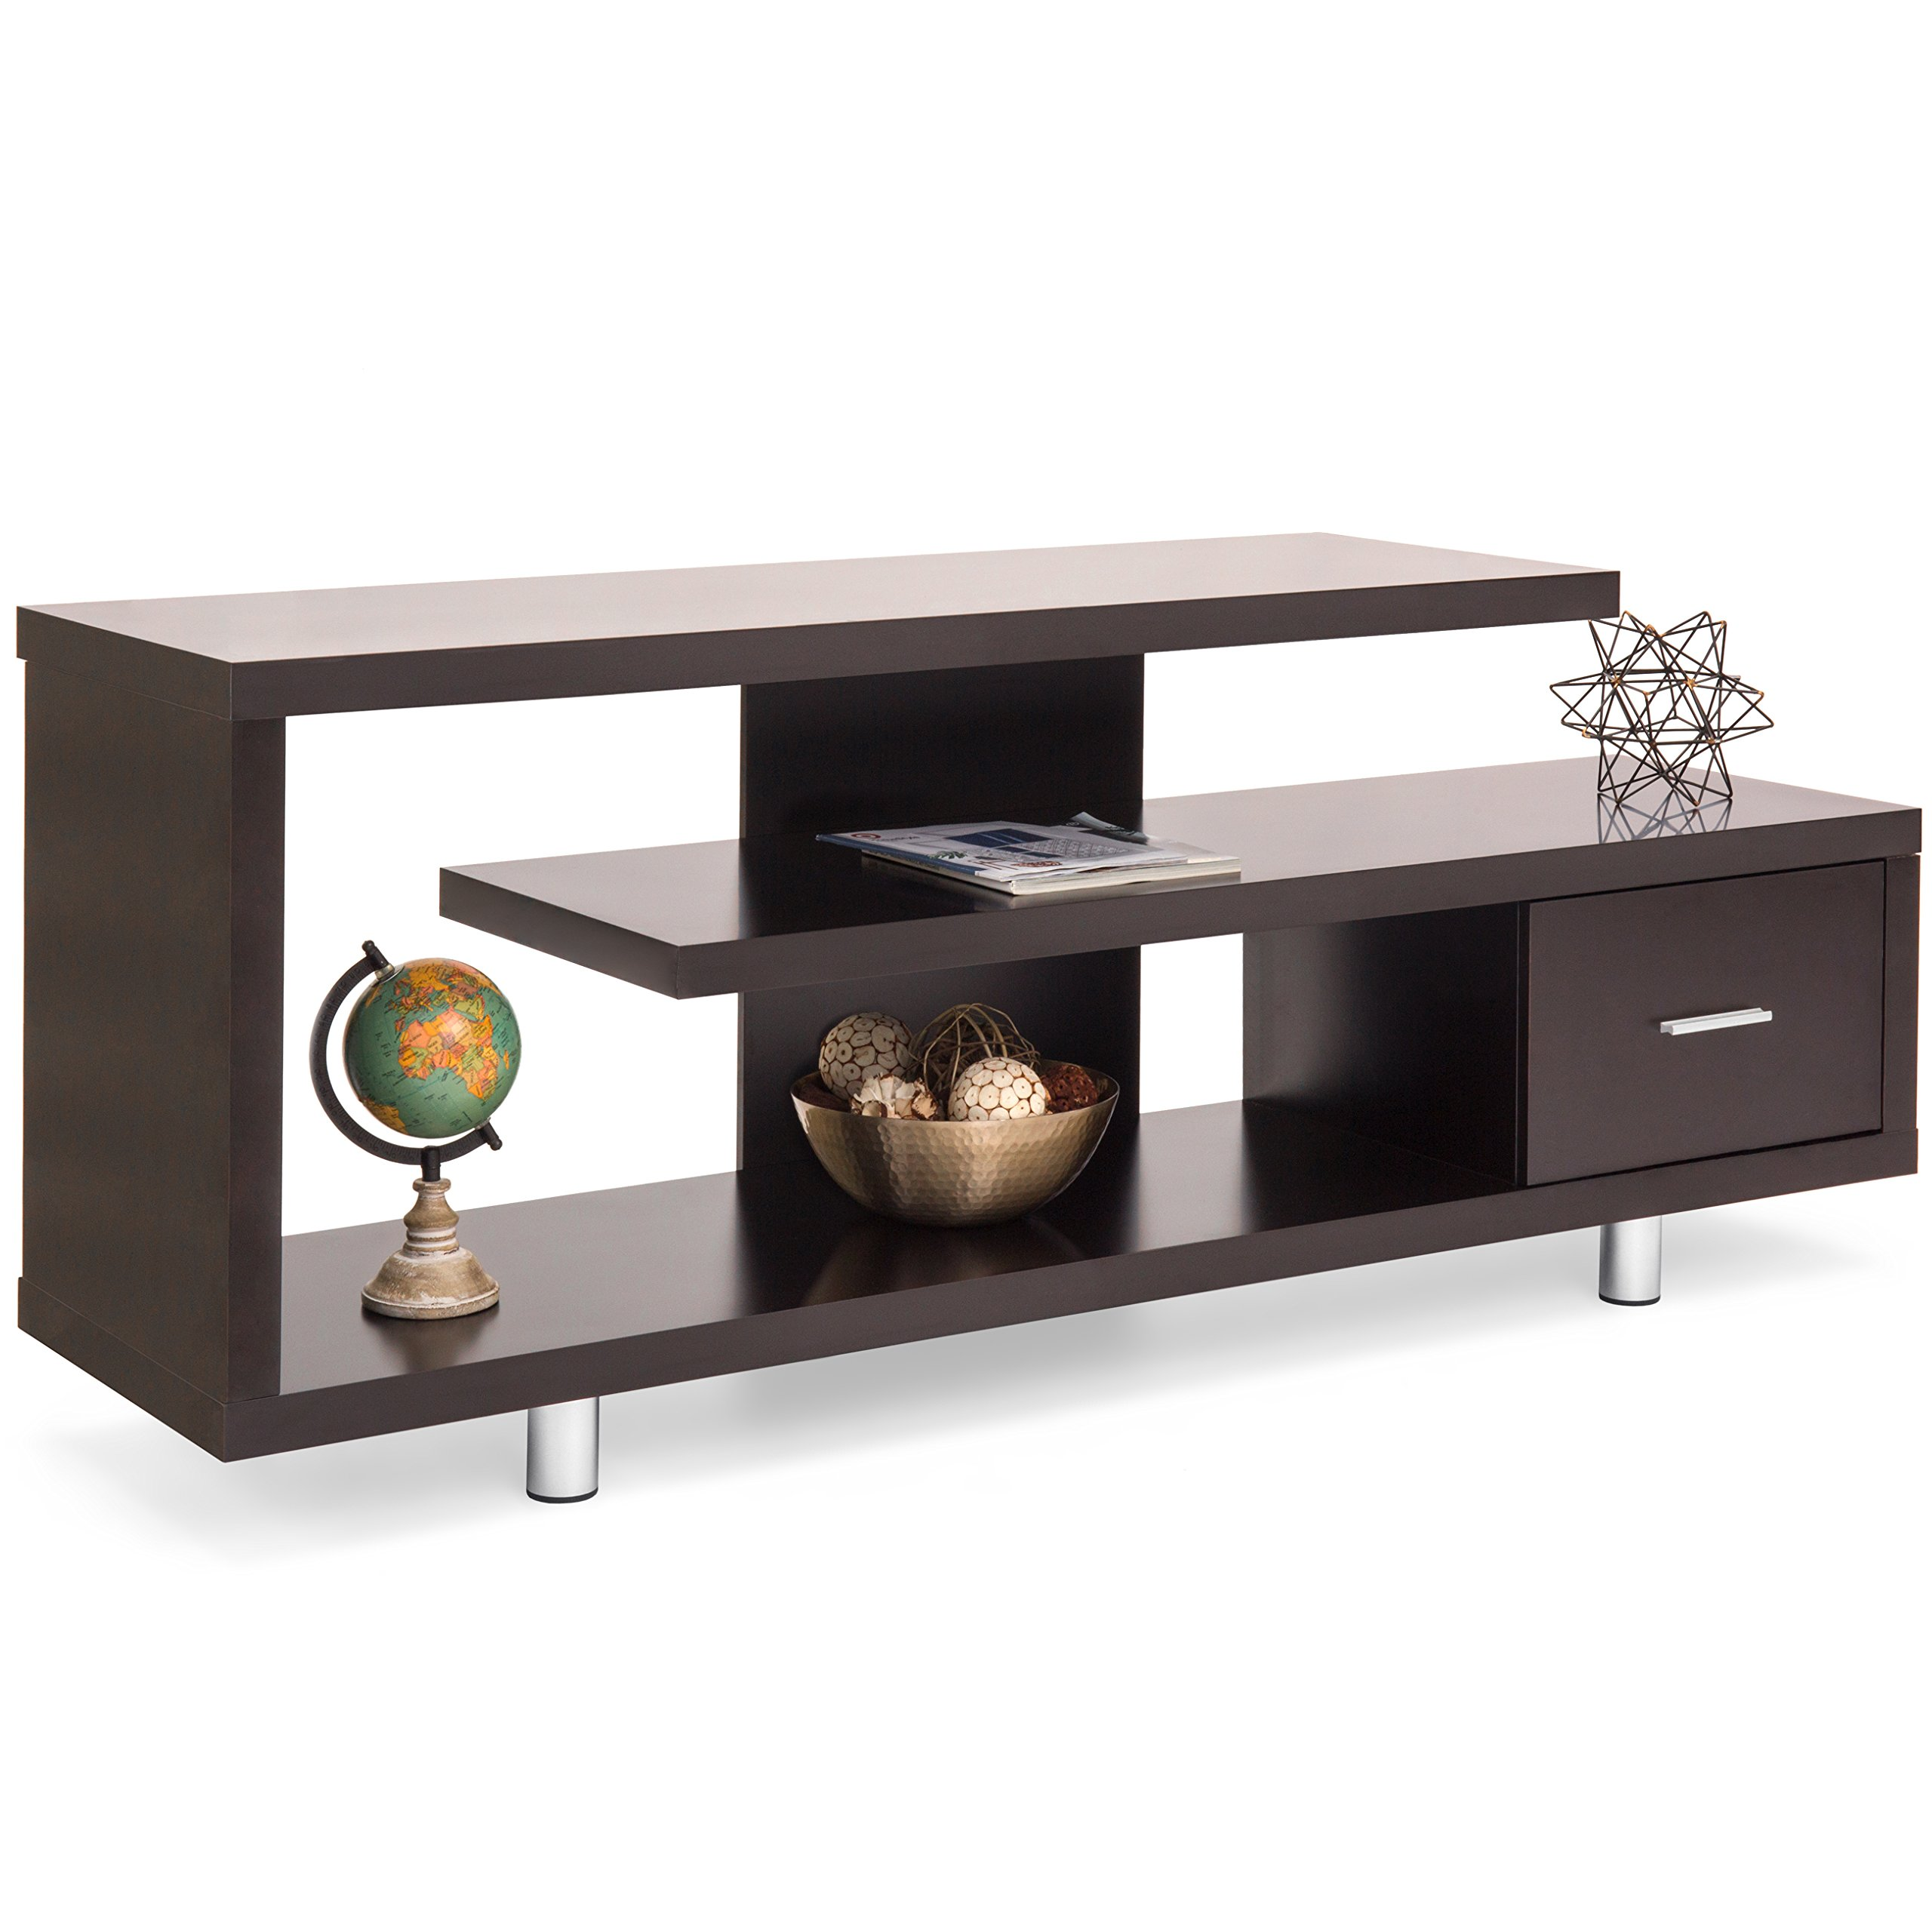 Best Choice Products Living Room Home Entertainment Media Console TV Stand Display w/ 3 Shelves, Sliding Drawer - Brown